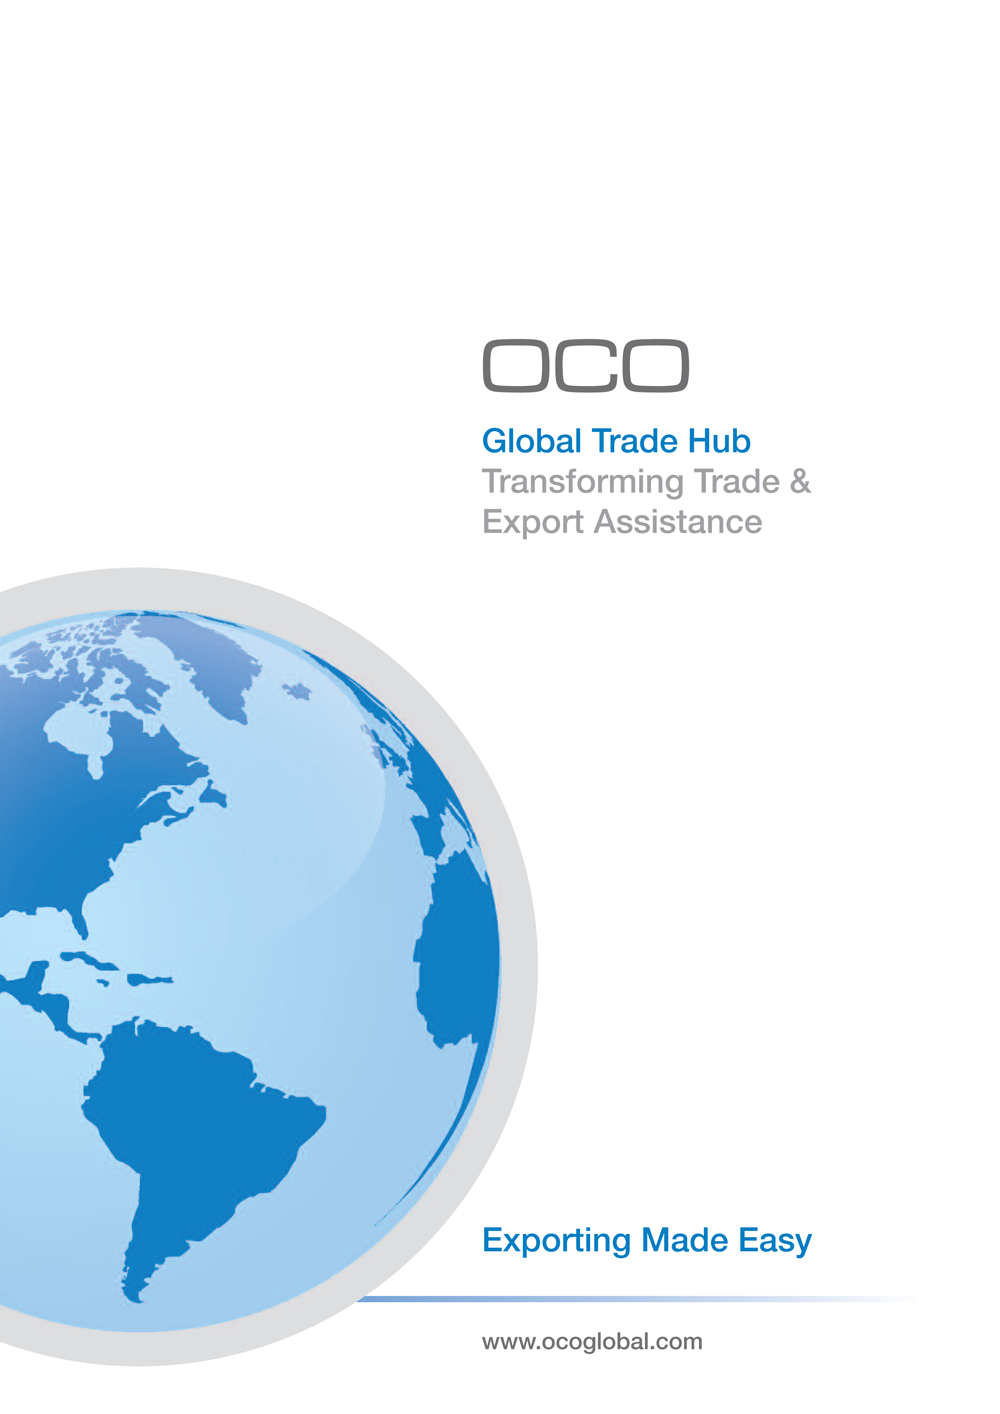 OCO, Global Trade Hub, Transforming Trade and Export Assistance